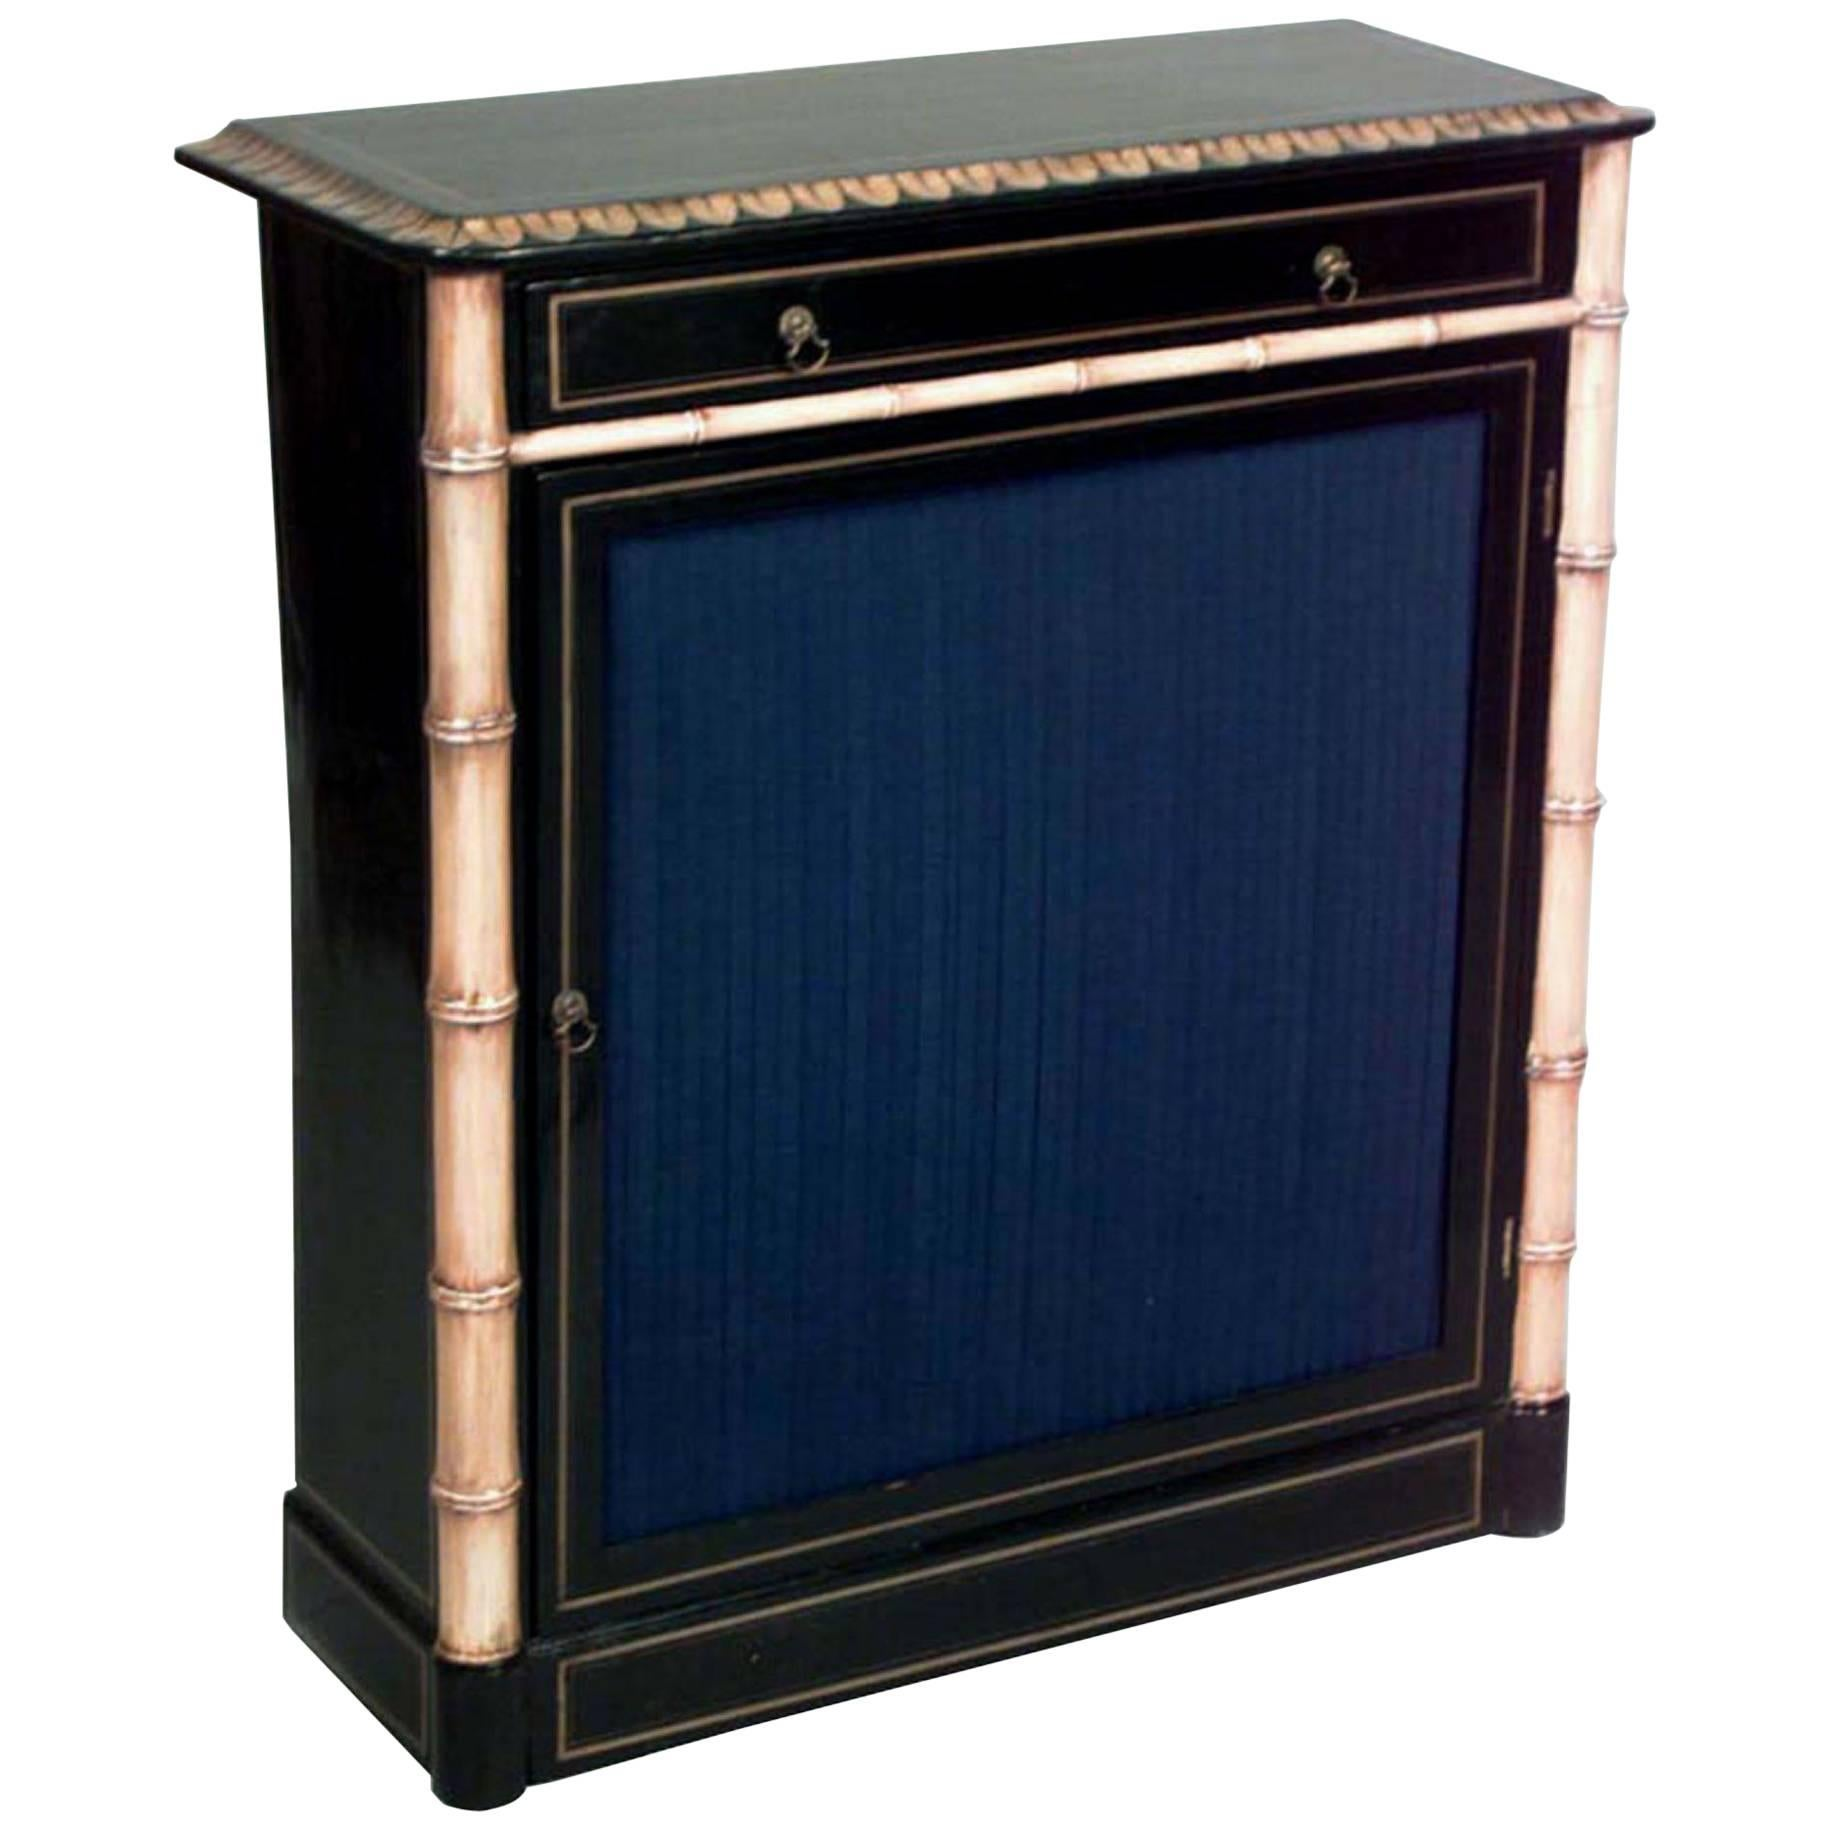 English Regency Style Black Lacquered Cabinet